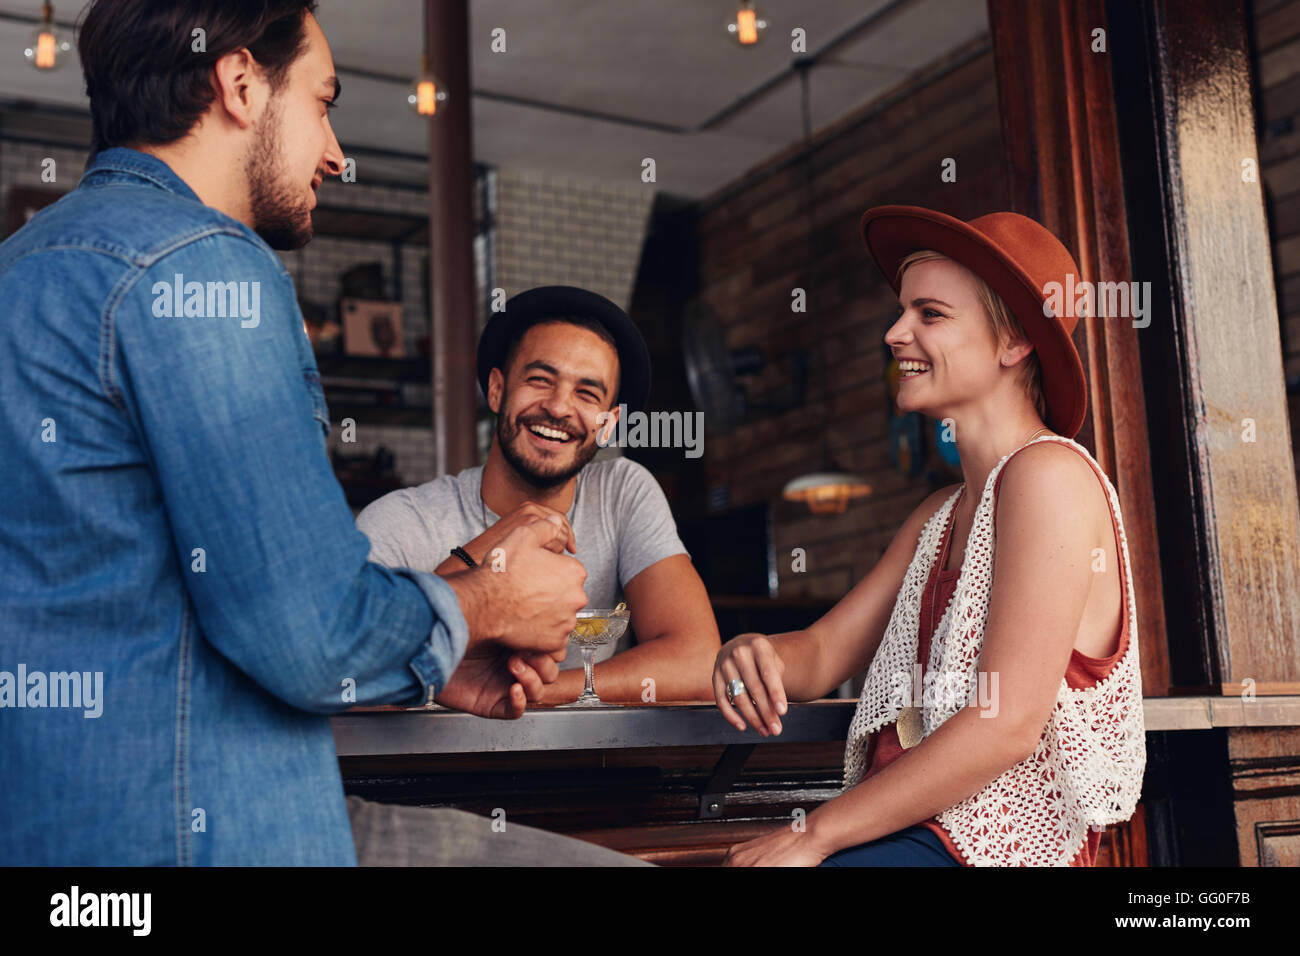 Young men and women sitting together and talking in a coffee shop. Group of young friends hanging out at a cafe. - Stock Image